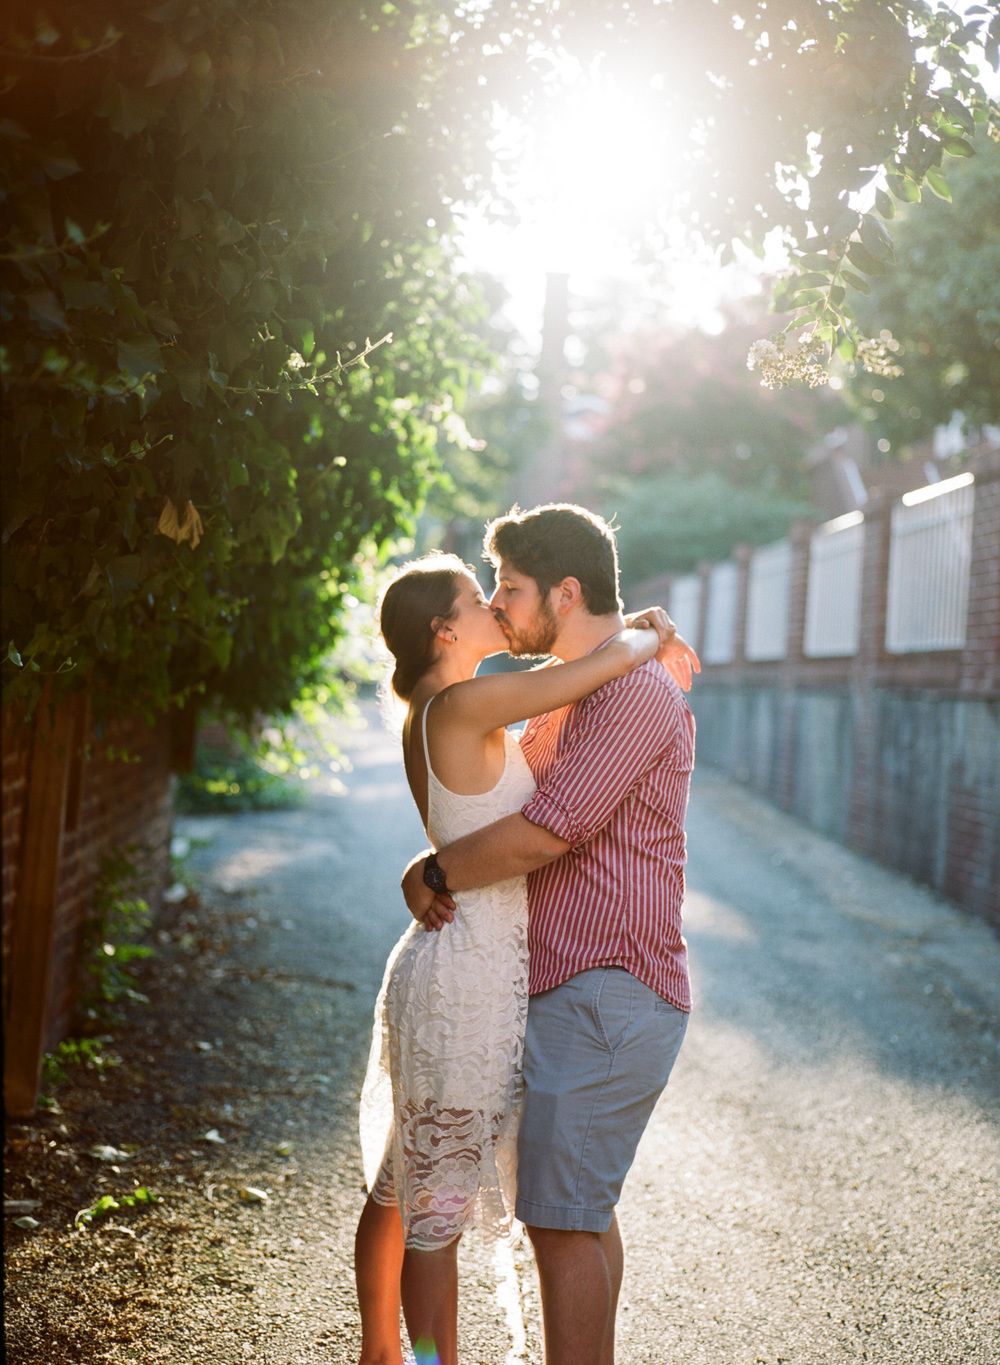 Old-Town-Alexandria-Engagement-Photography-23.jpg